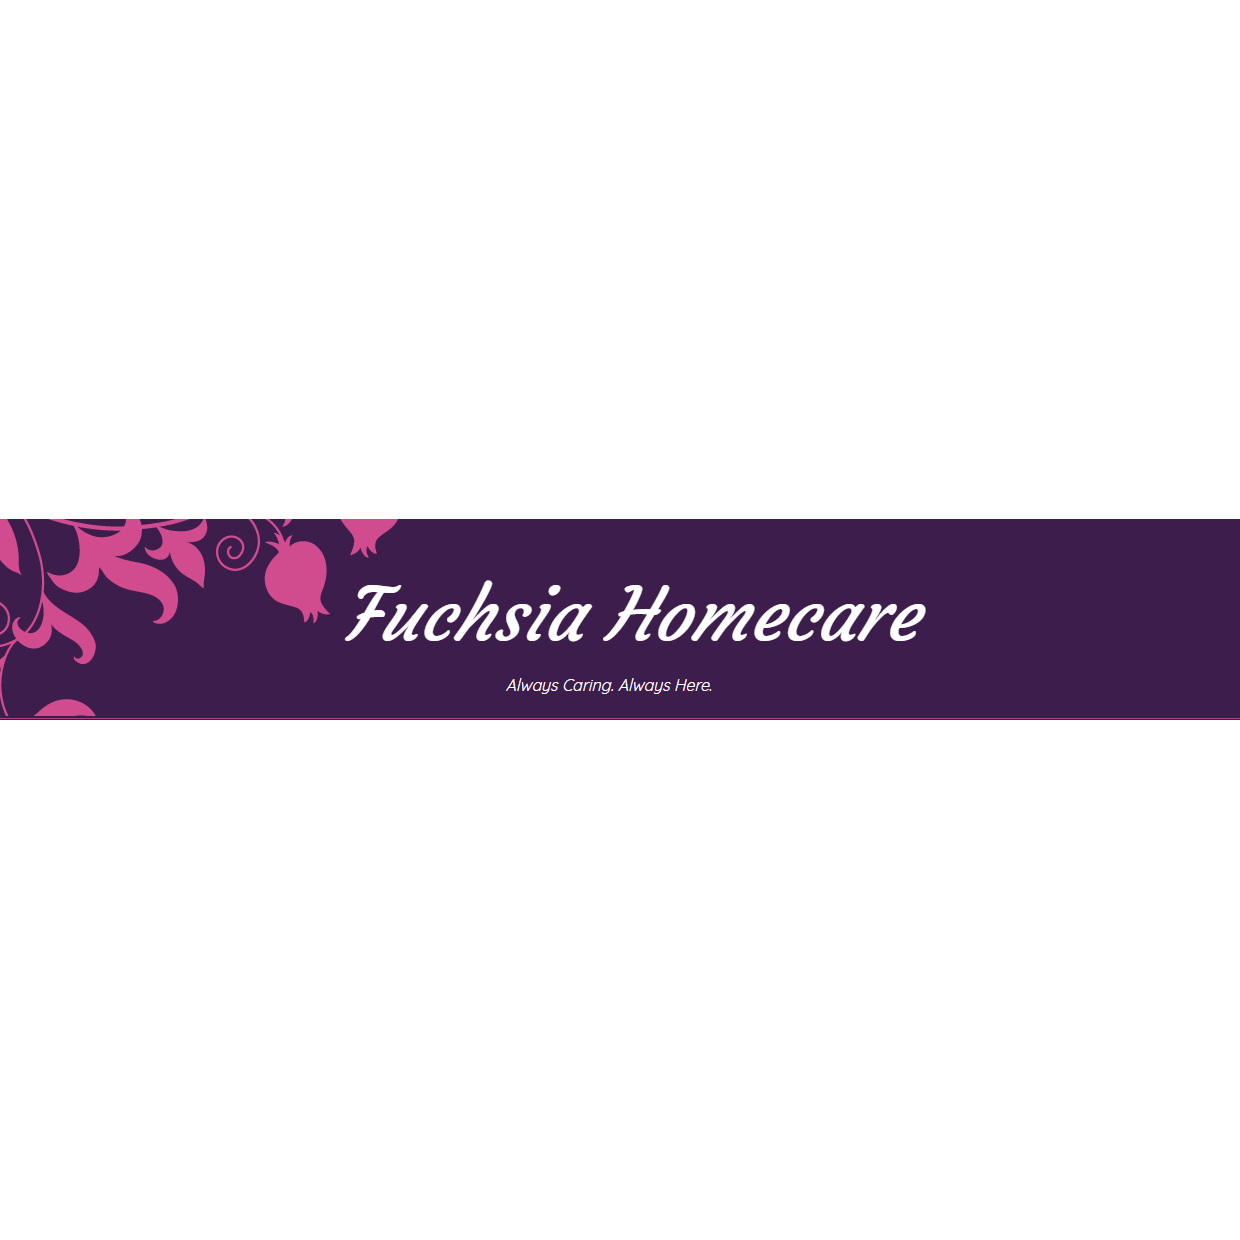 Fuchsia Homecare Ltd - Ipswich, Essex IP2 0UG - 01473 233797 | ShowMeLocal.com